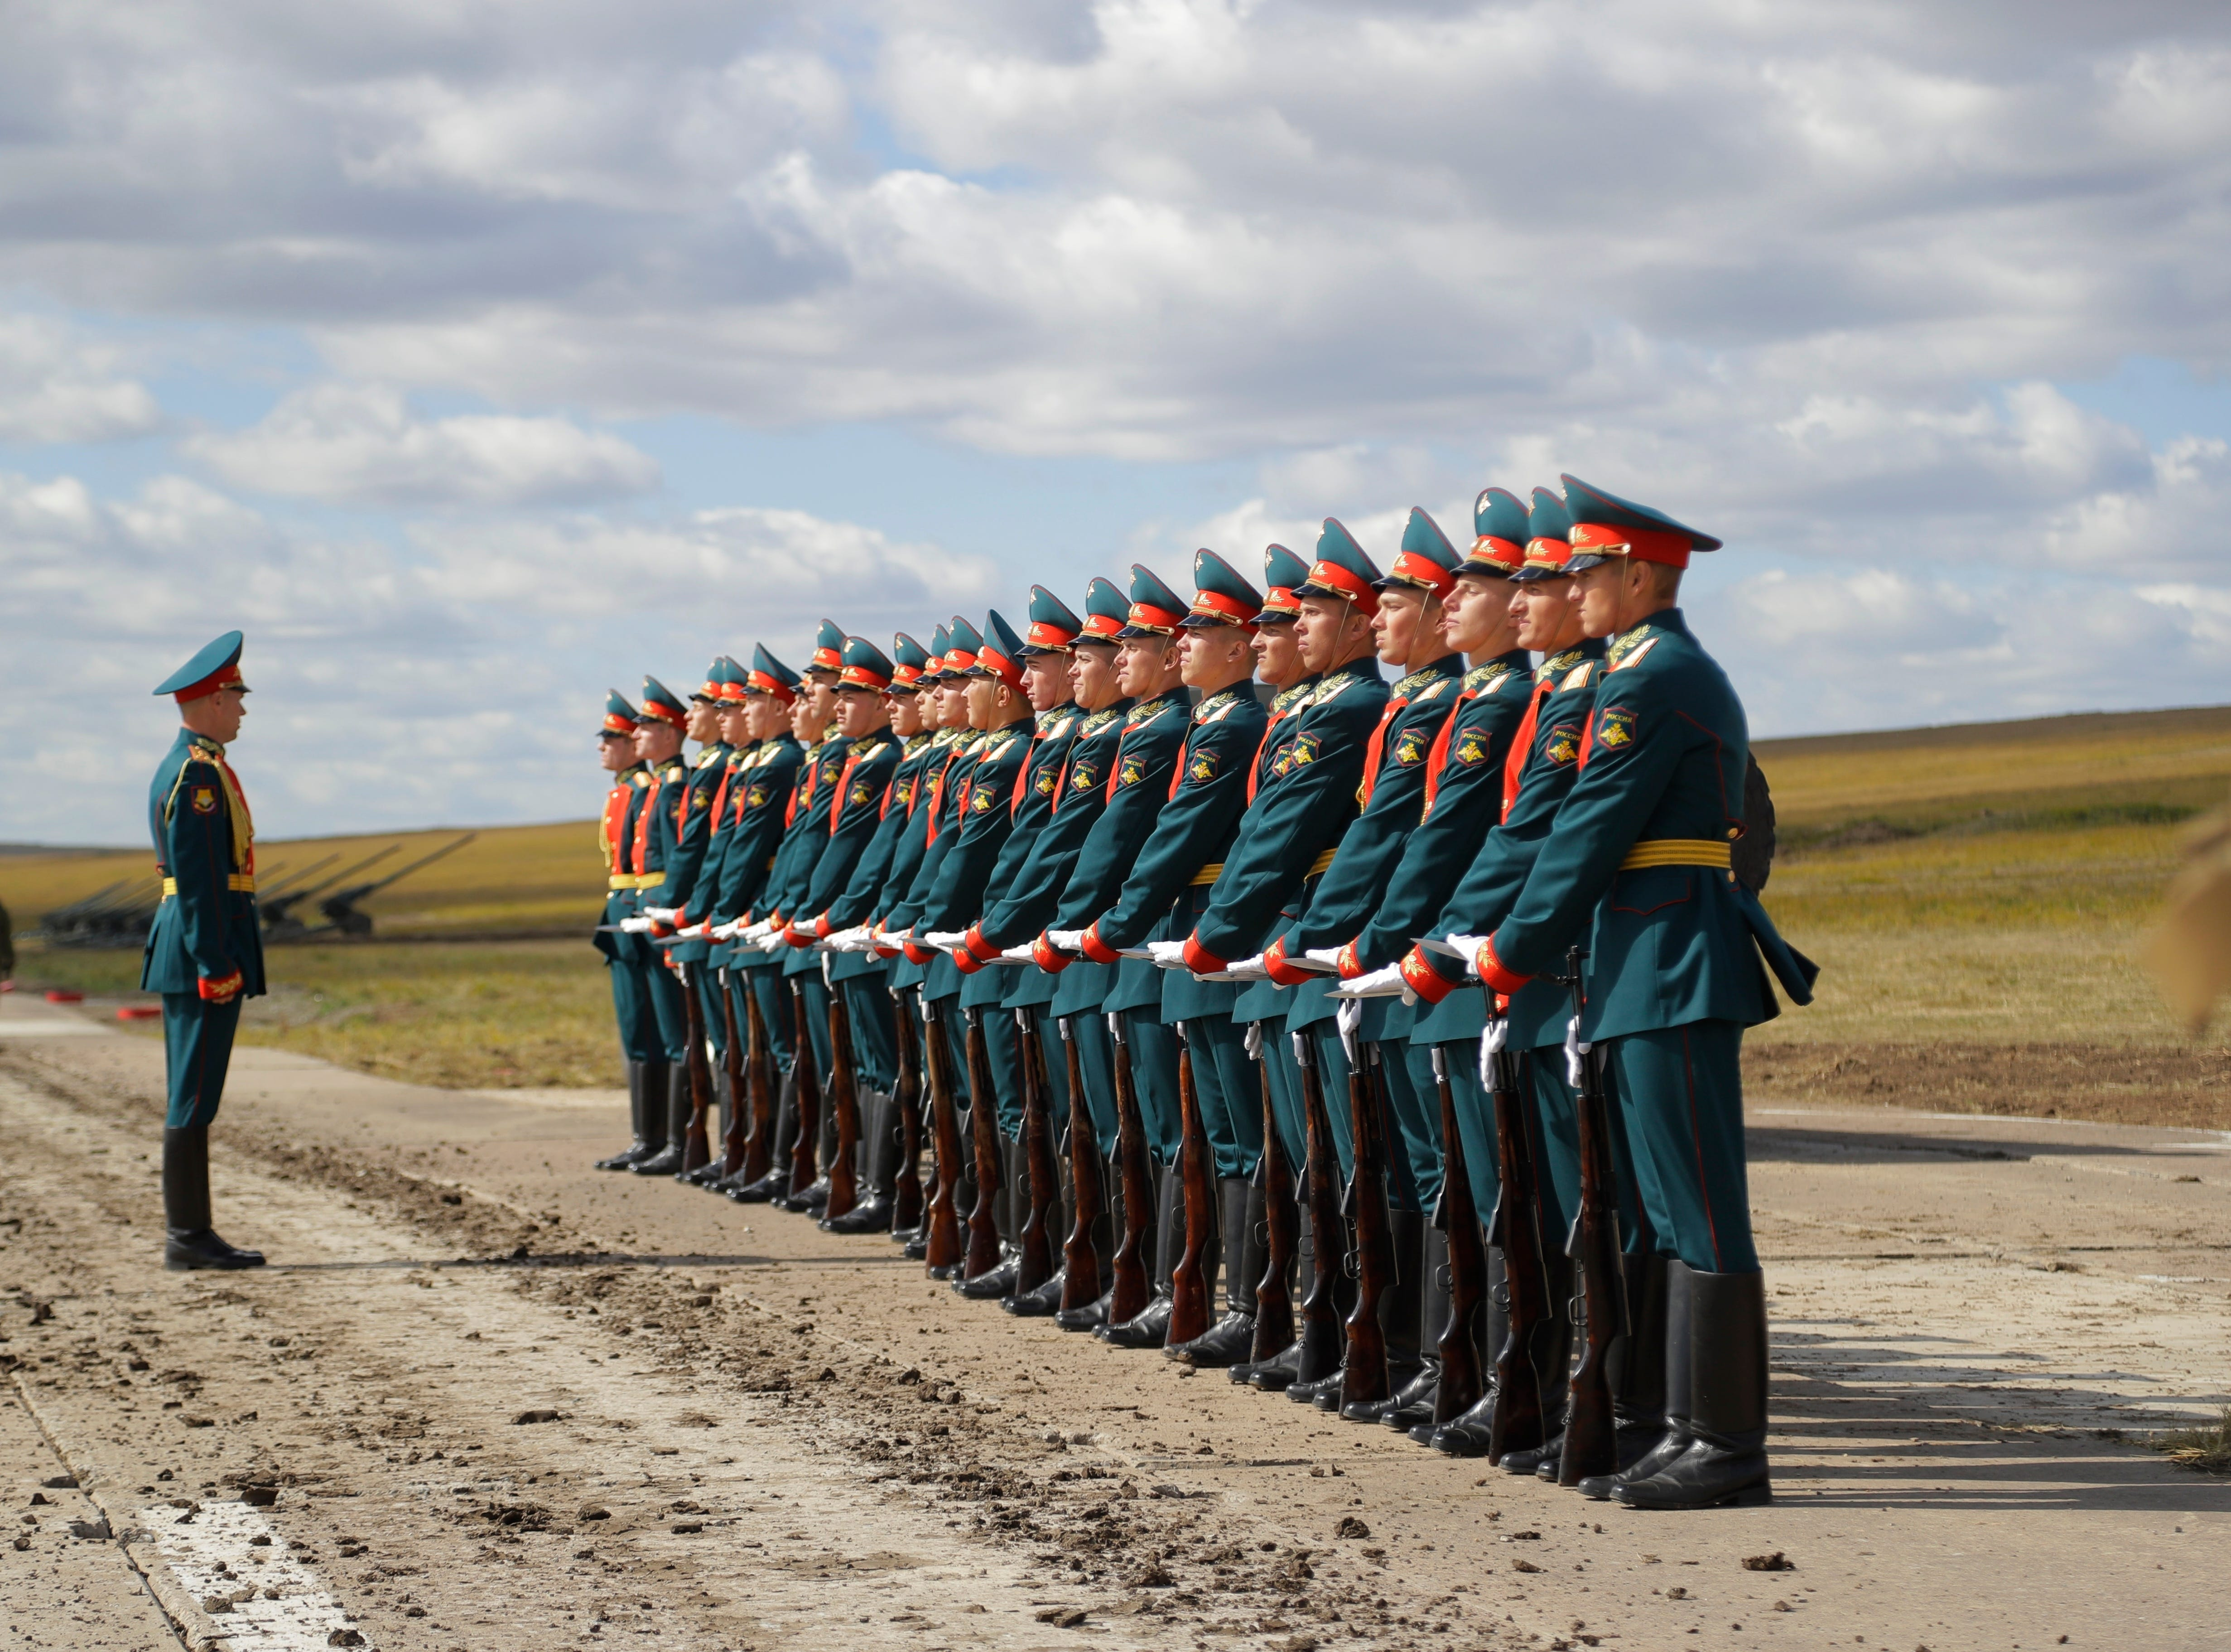 "Russian honors guard prepares to take a part in a parade prior to a military exercises on training ground ""Tsugol"", about 250 kilometers (156 miles ) south-east of the city of Chita during Vostok 2018 in Eastern Siberia, Russia, Thursday, Sept. 13, 2018. The weeklong Vostok (East) 2018 maneuvers launched Tuesday span vast expanses of Siberia and the Far East, the Arctic and the Pacific Oceans. They involve nearly 300,000 Russian troops along with 1,000 Russian aircraft and 36,000 tanks and other combat vehicles."